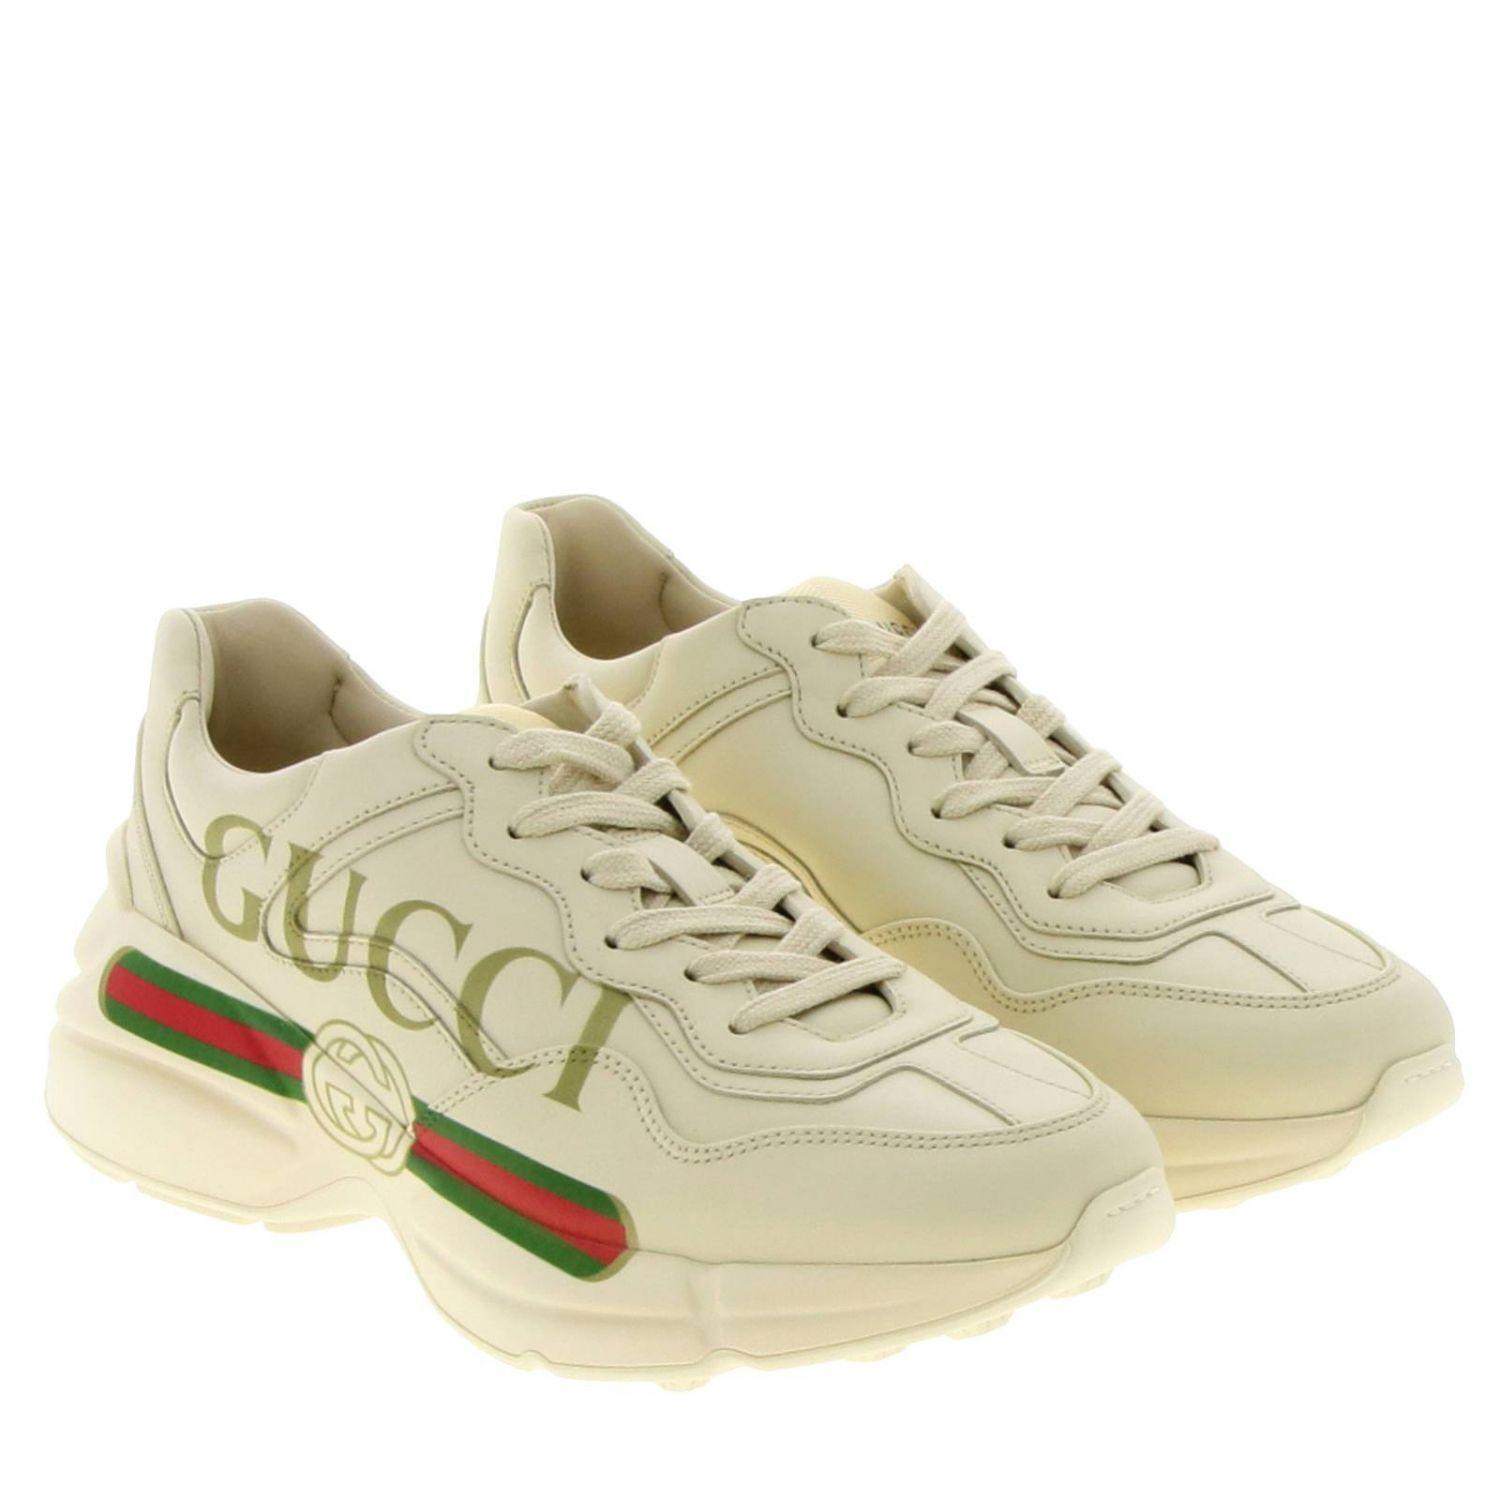 Gucci Rhyton Logo Leather Sneakers in